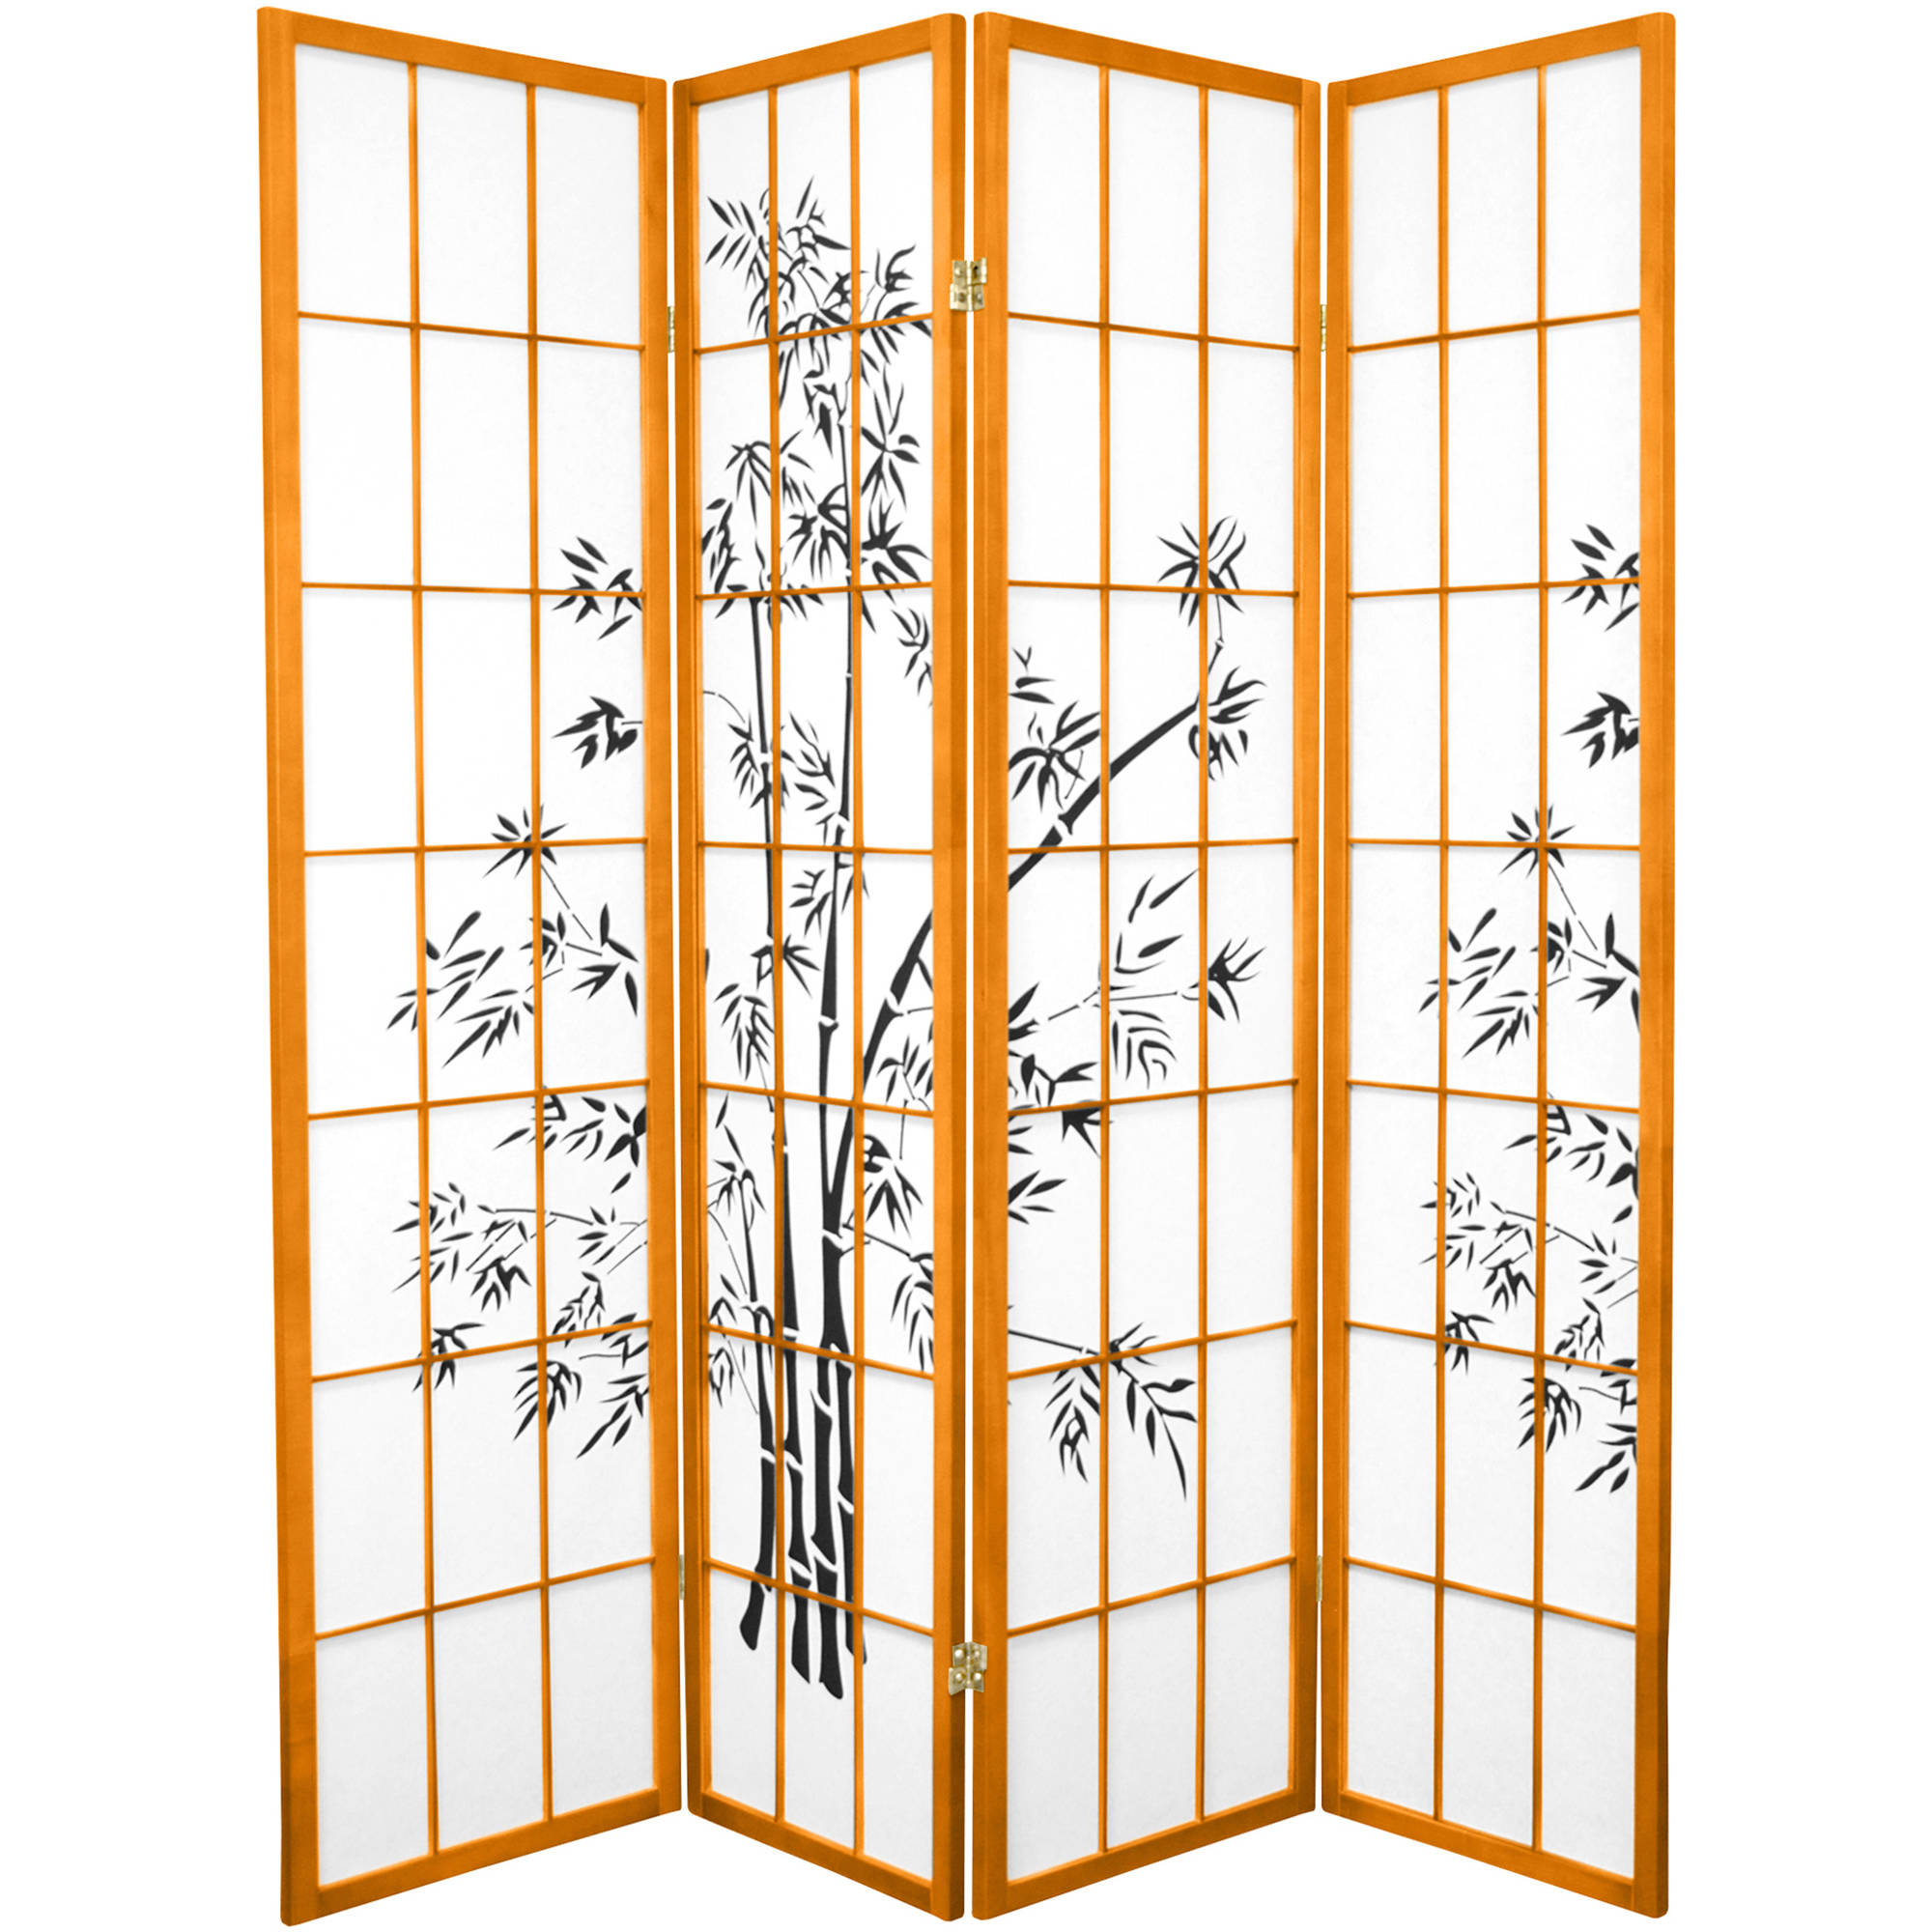 6' Tall Lucky Bamboo Room Divider